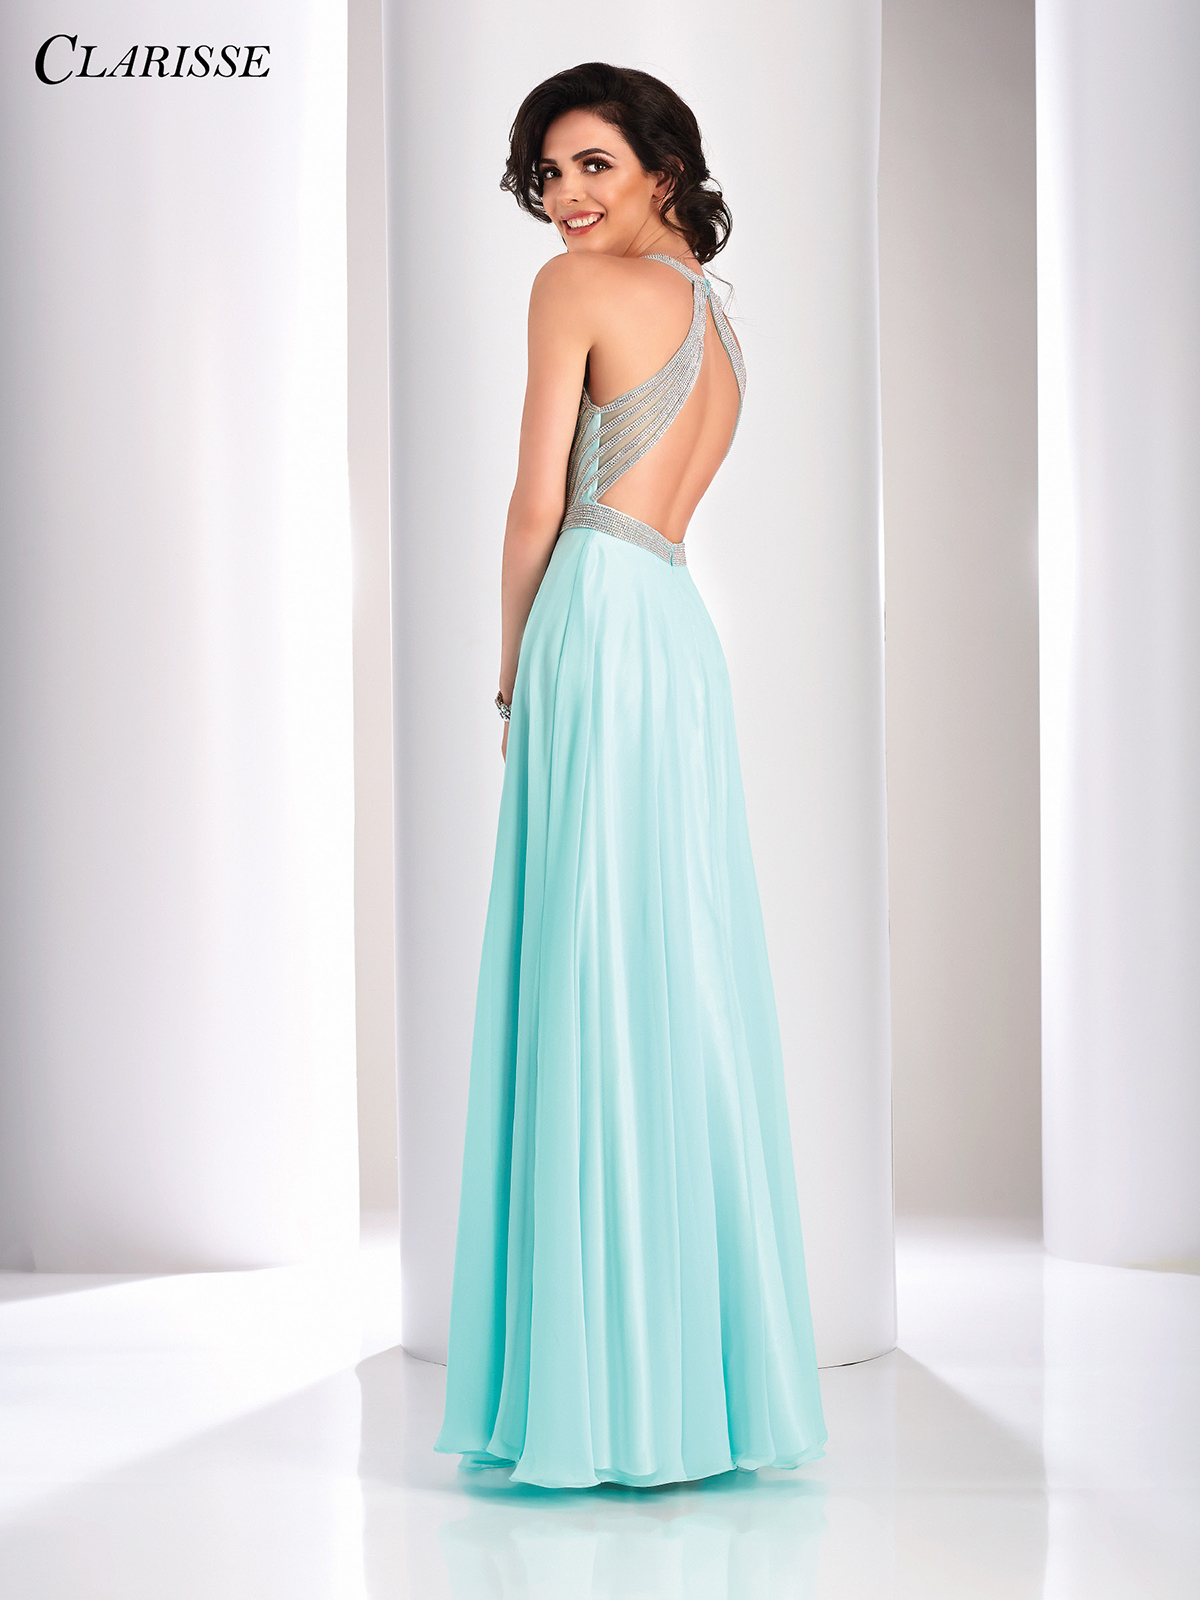 Clarisse Prom Dress 3068 | Promgirl.net